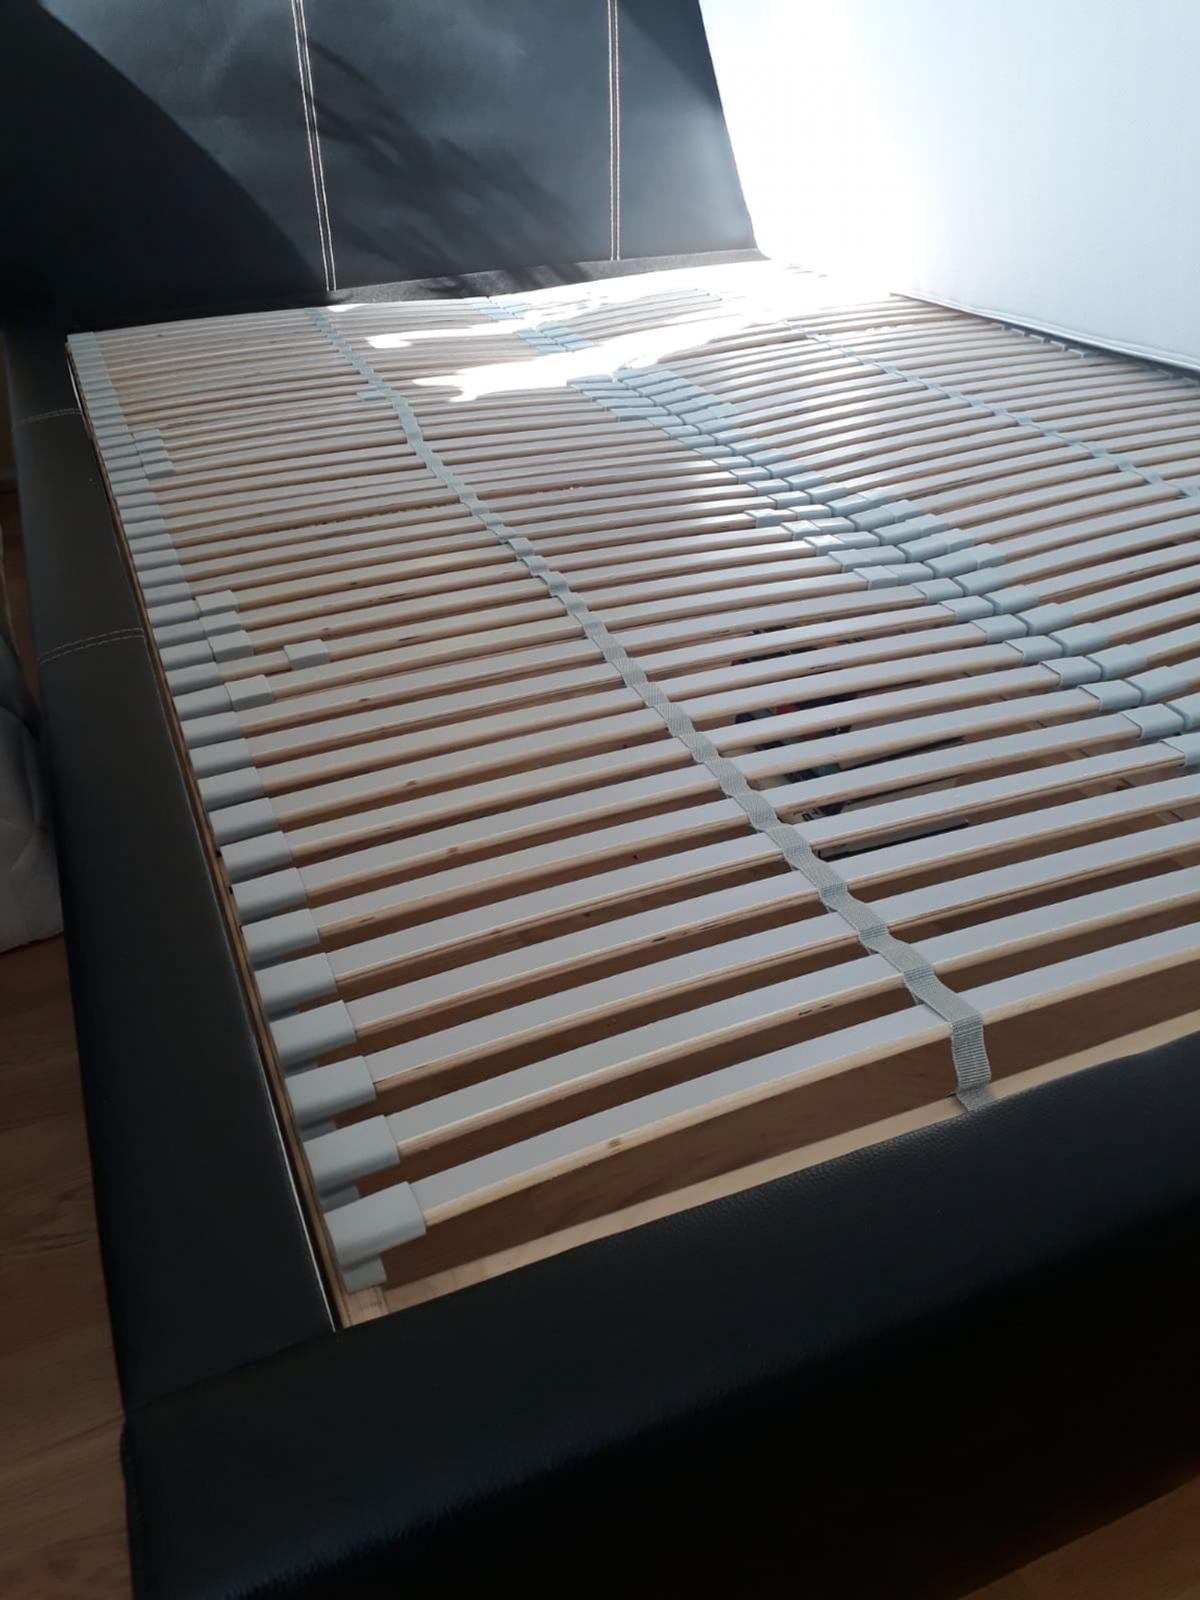 Ikea Sultan Laxeby Lattenrost 2x 70 X 200 Cm In 89275 Elchingen For 45 00 For Sale Shpock